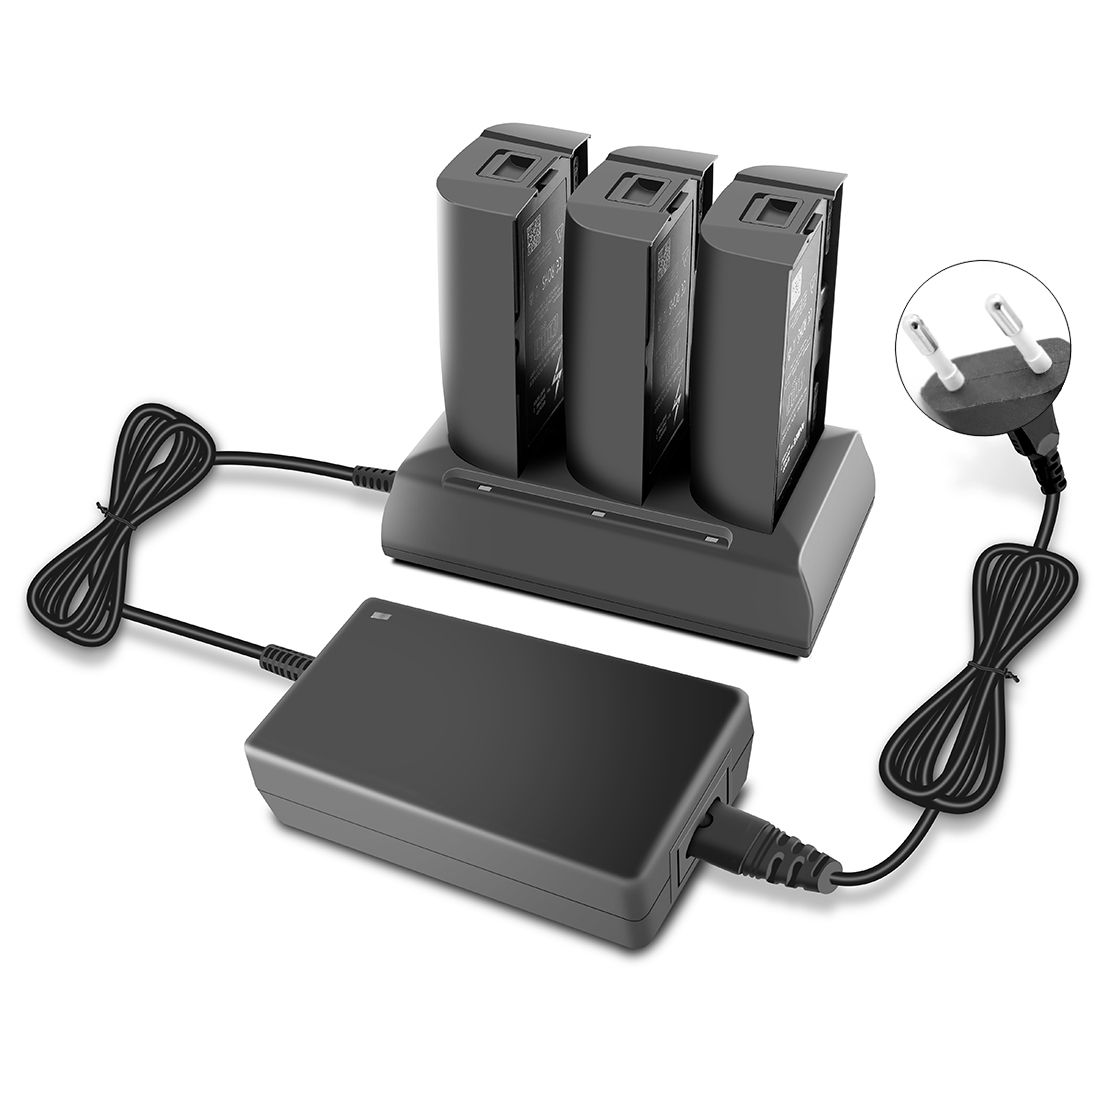 Advanced High Capacity Version Charger for Parrot Bebop2 Power 3700mah 100 minutes High Capacity Battery  - EU/US/AUS/UK PlugAdvanced High Capacity Version Charger for Parrot Bebop2 Power 3700mah 100 minutes High Capacity Battery  - EU/US/AUS/UK Plug